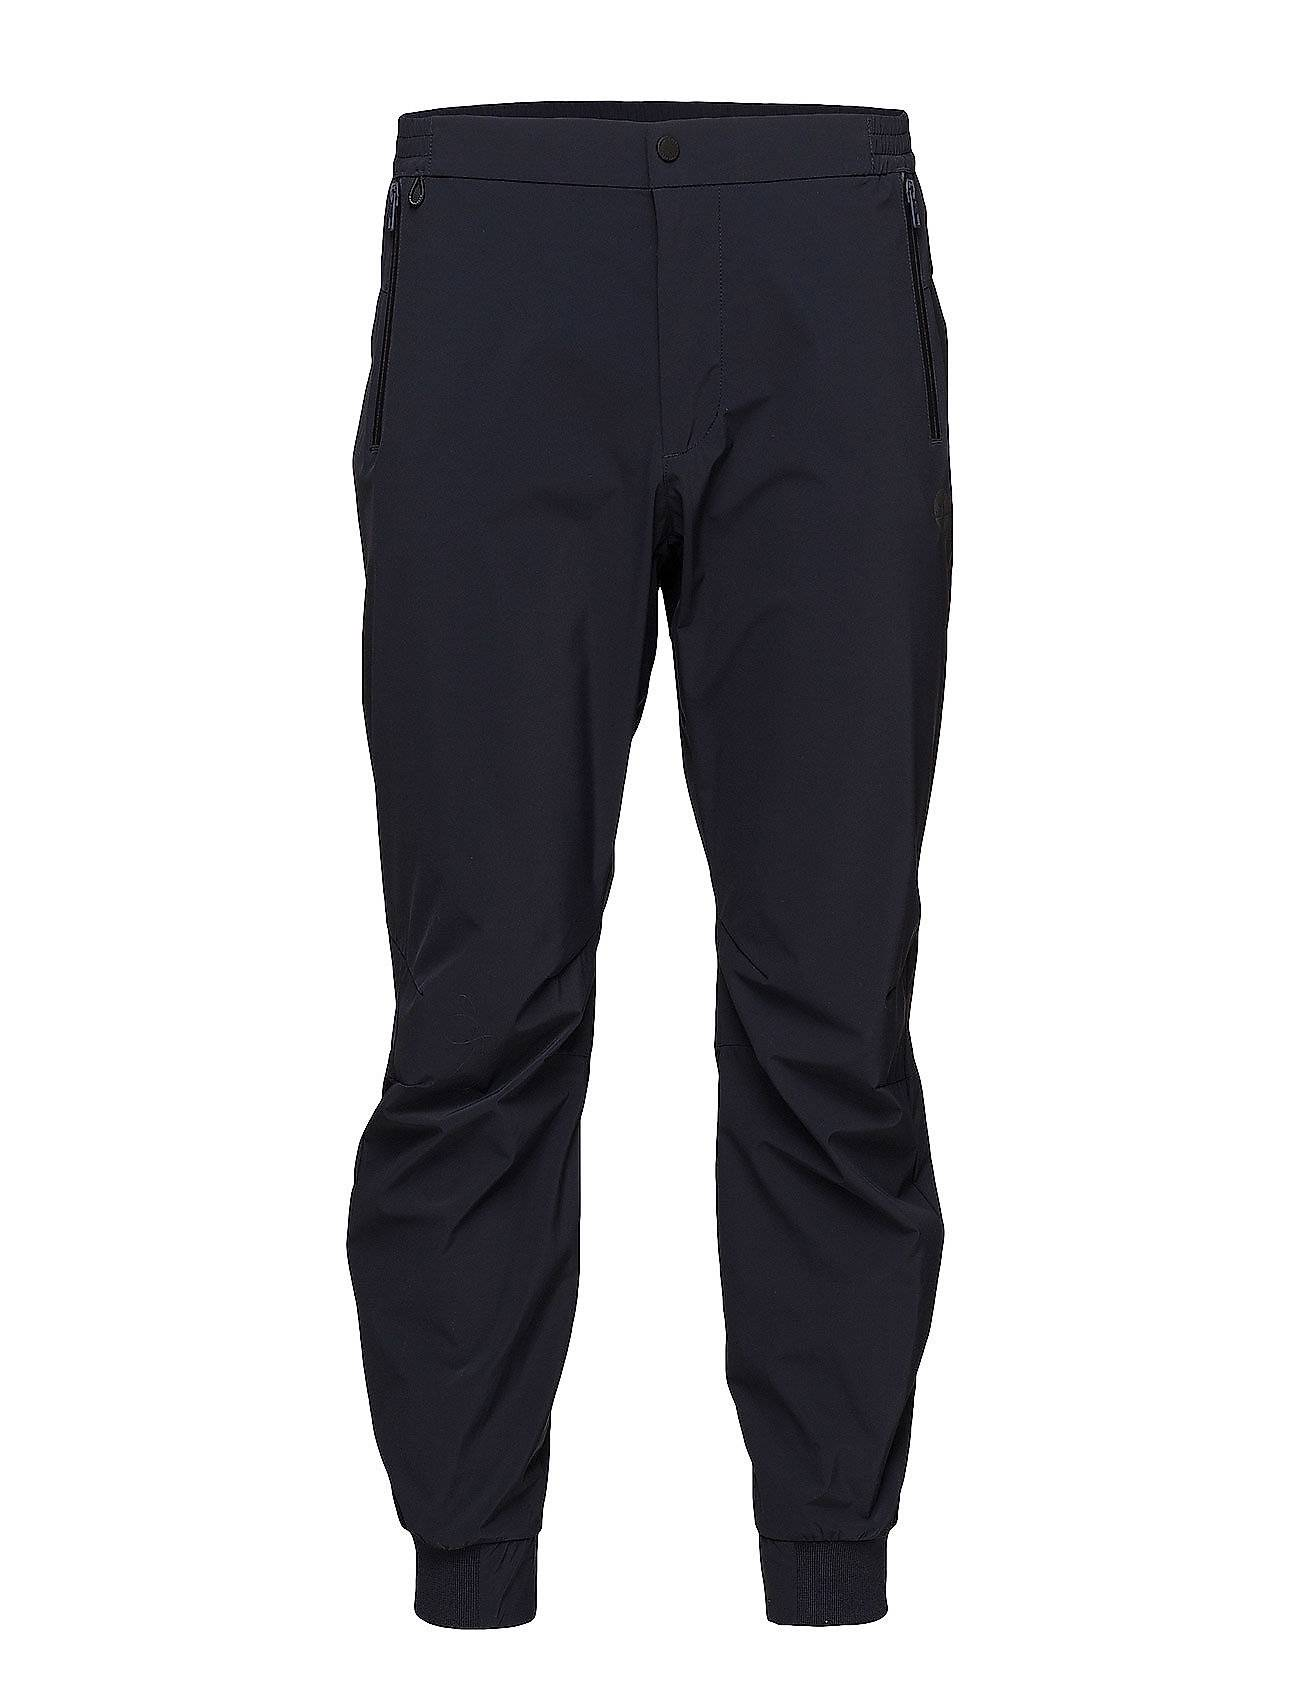 J. Lindeberg M Giles Pant Lux Softshell